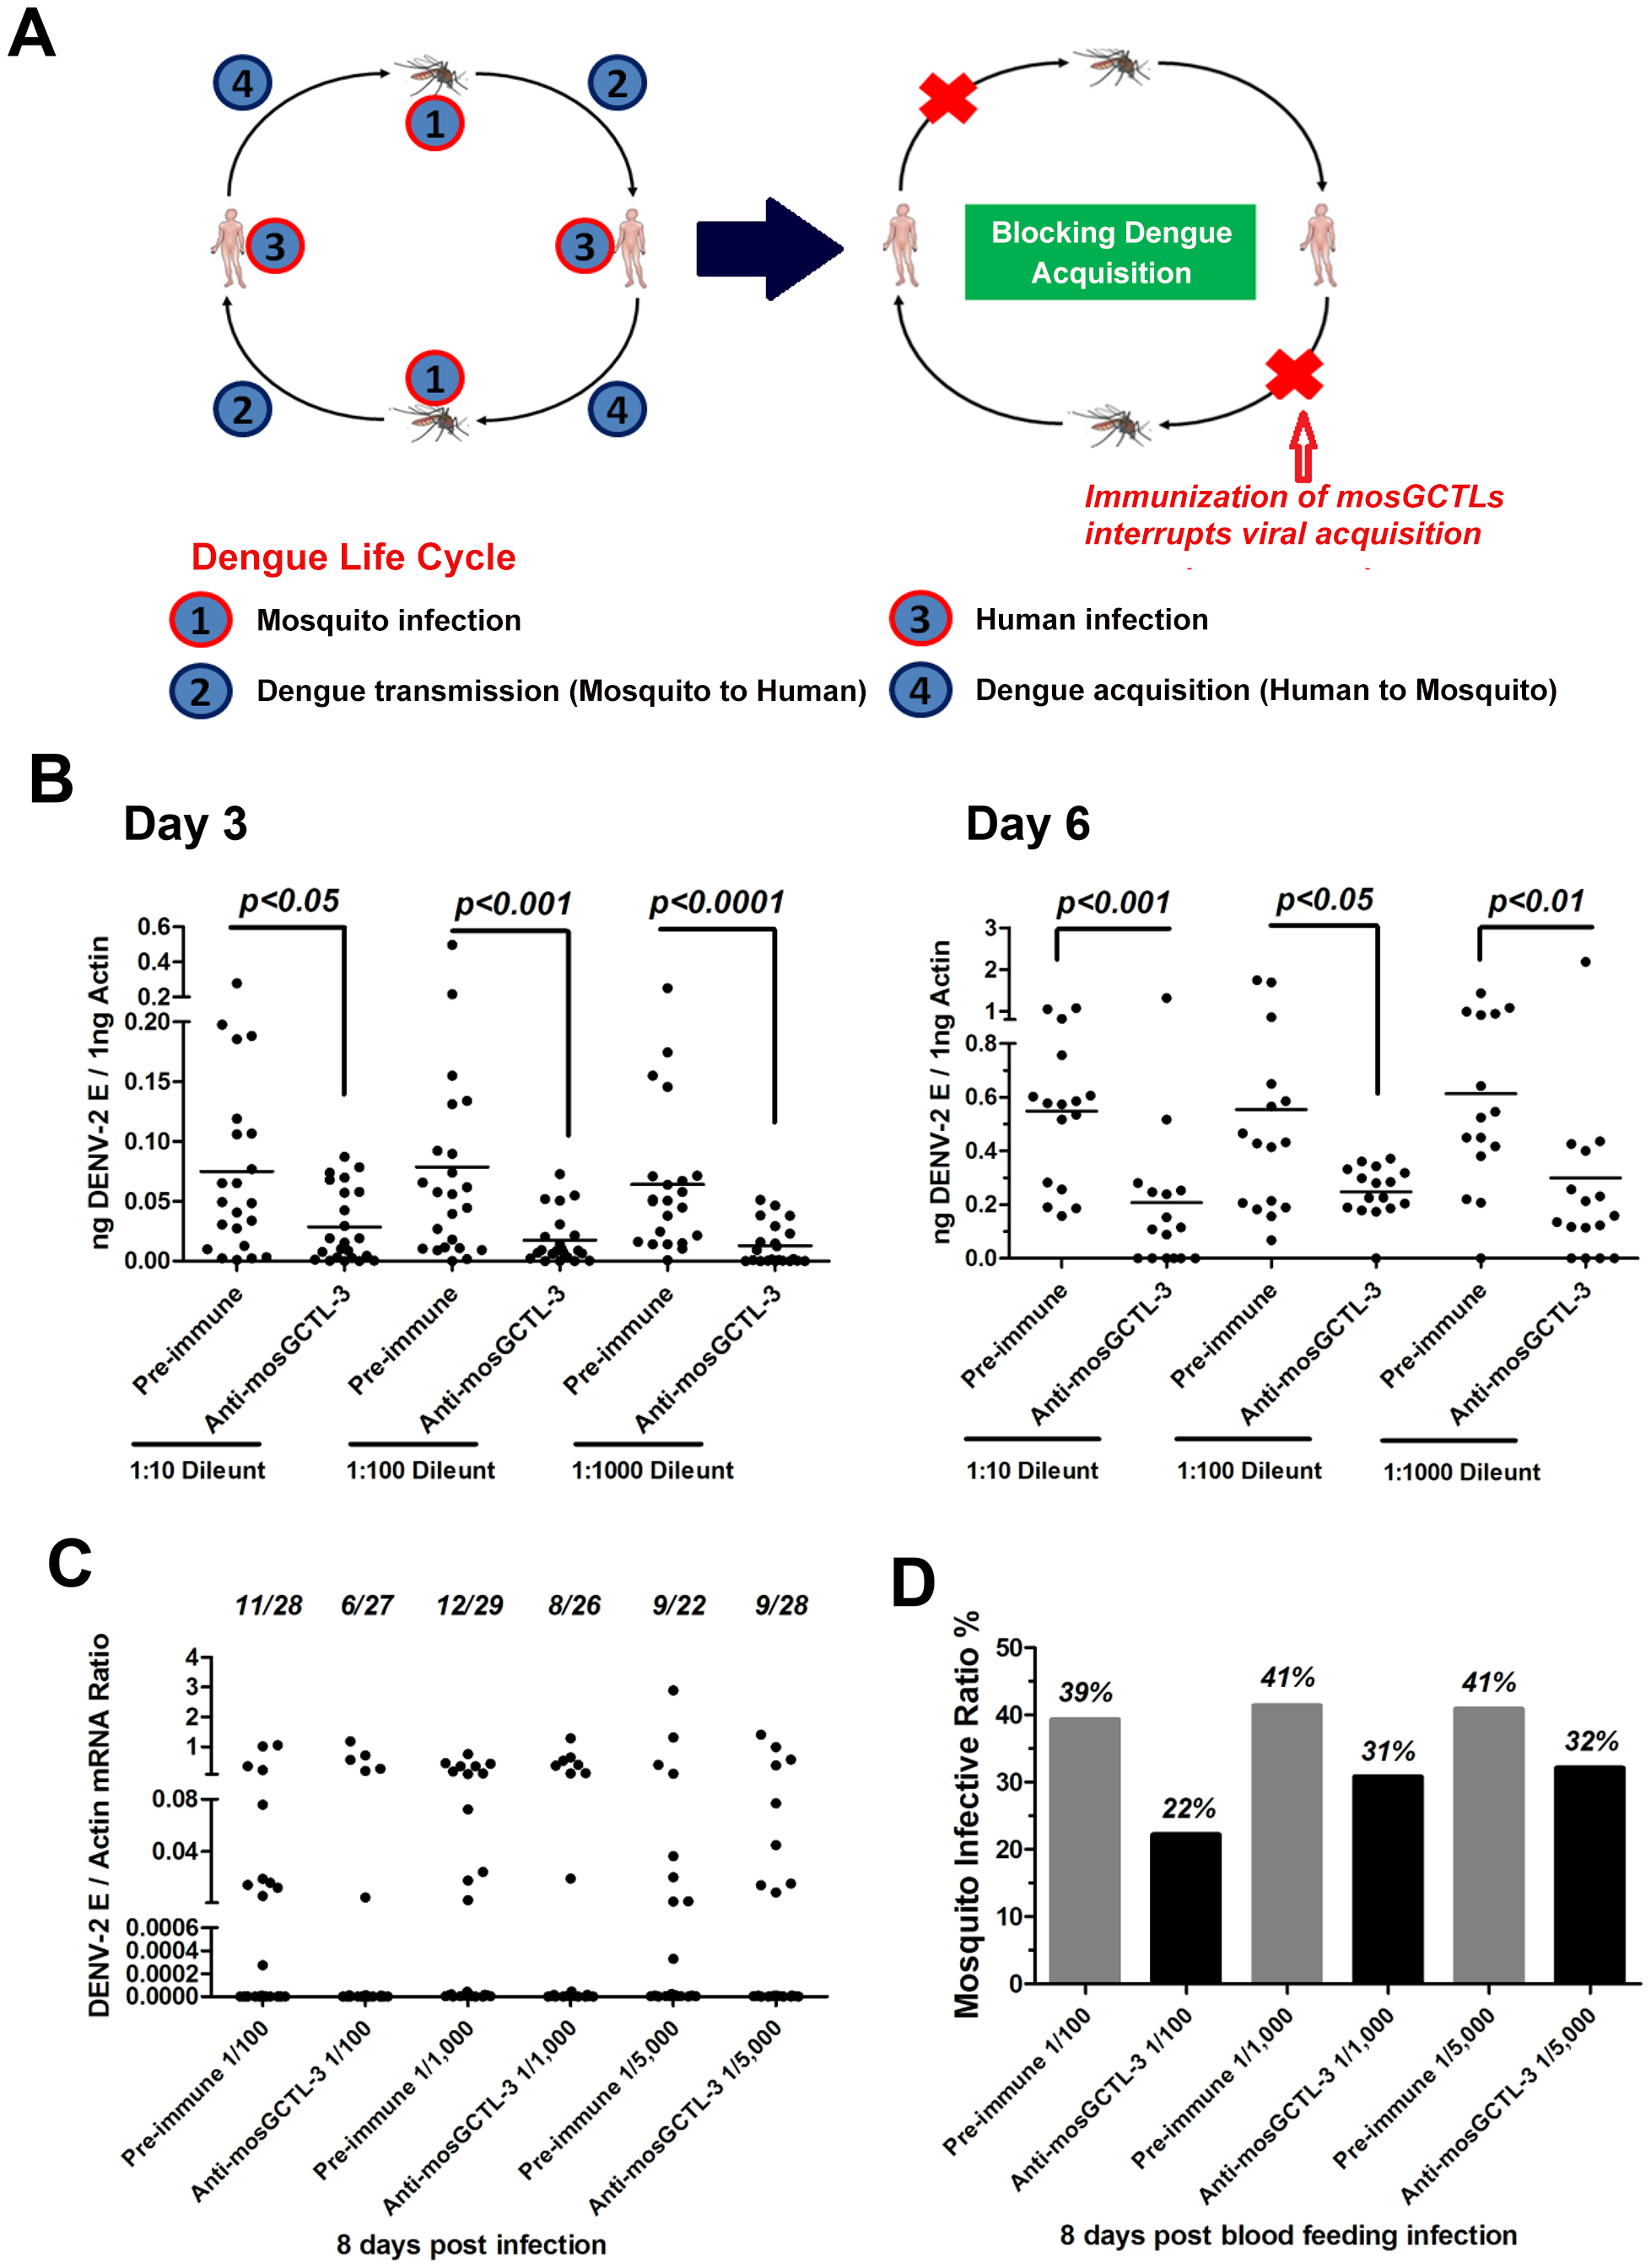 mosGCTL-3 antisera interrupted DENV-2 infection of <i>A. aegypti</i>.